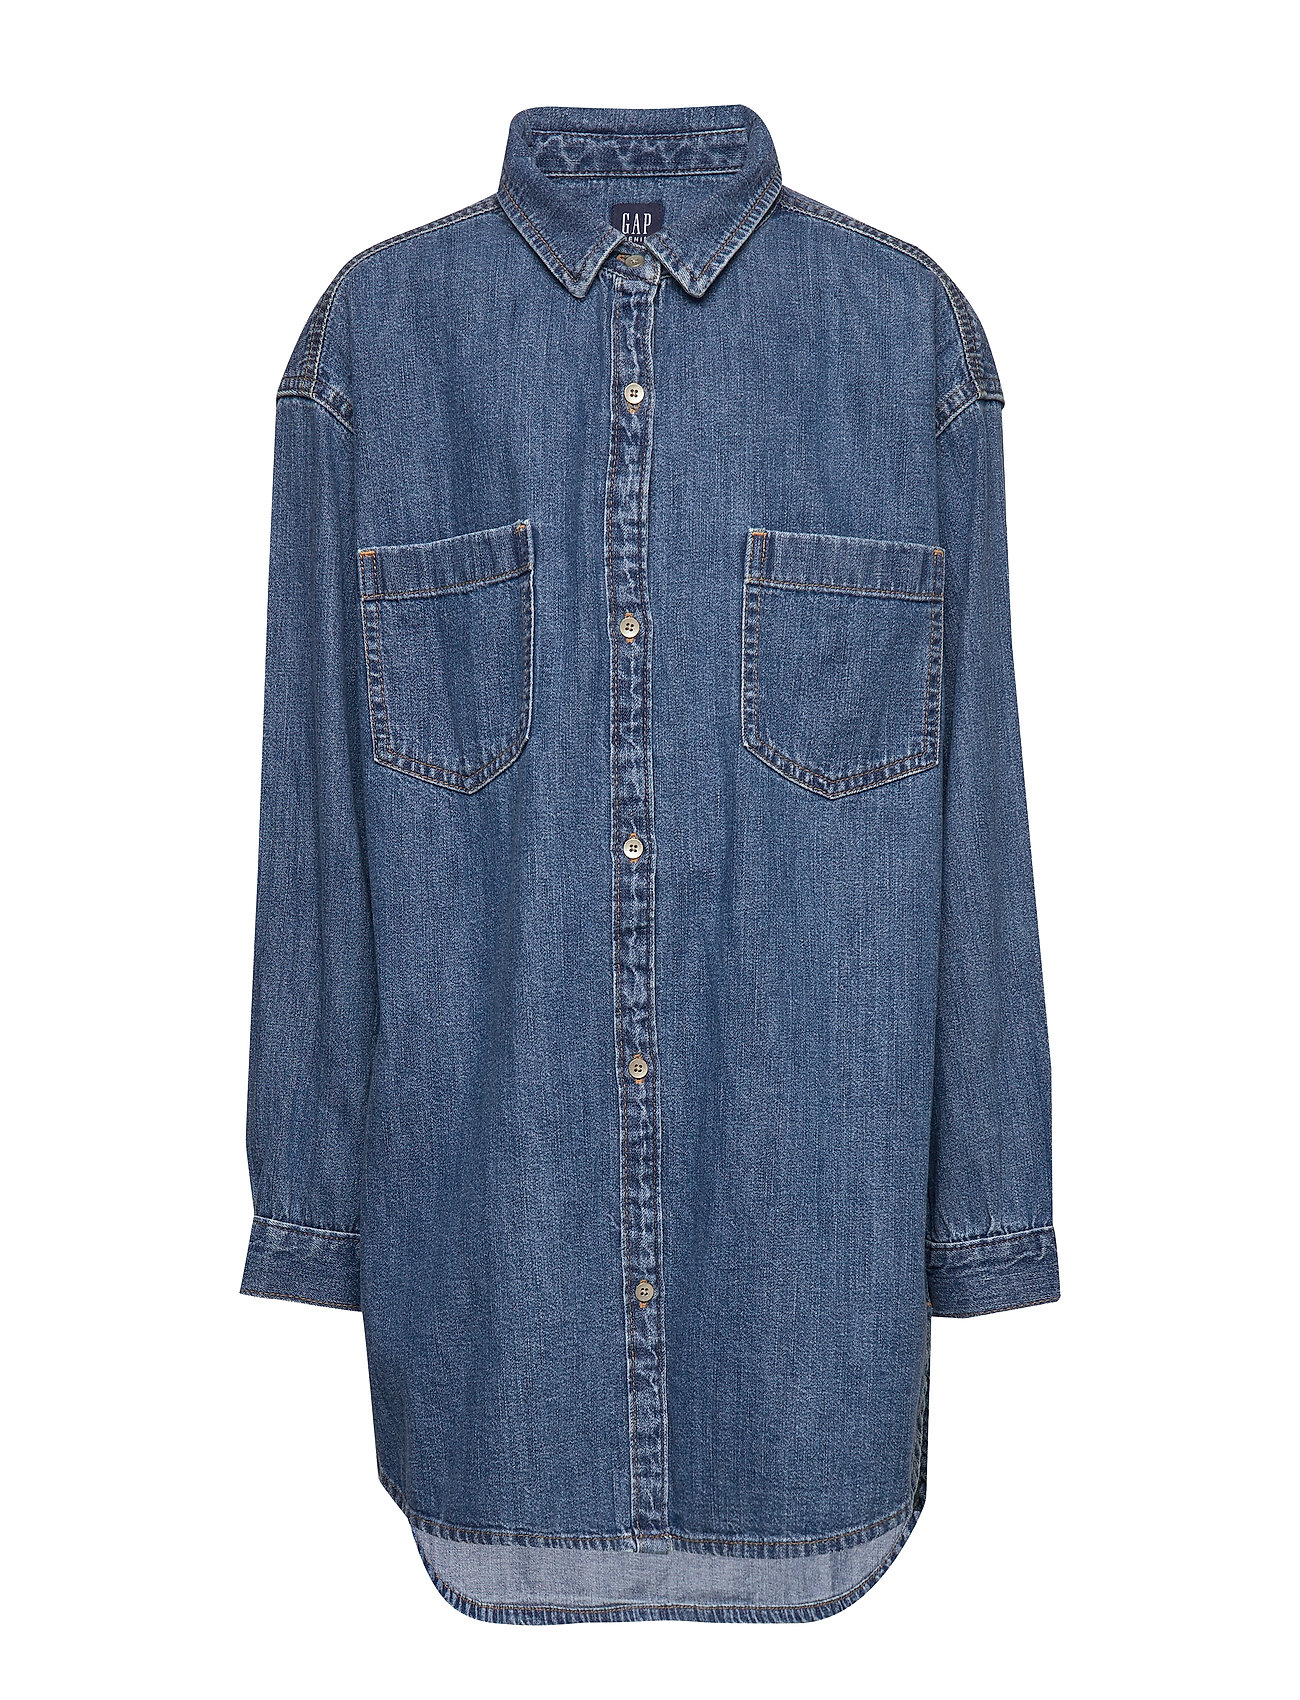 GAP Kids Oversize Denim Shirt - DENIM 616